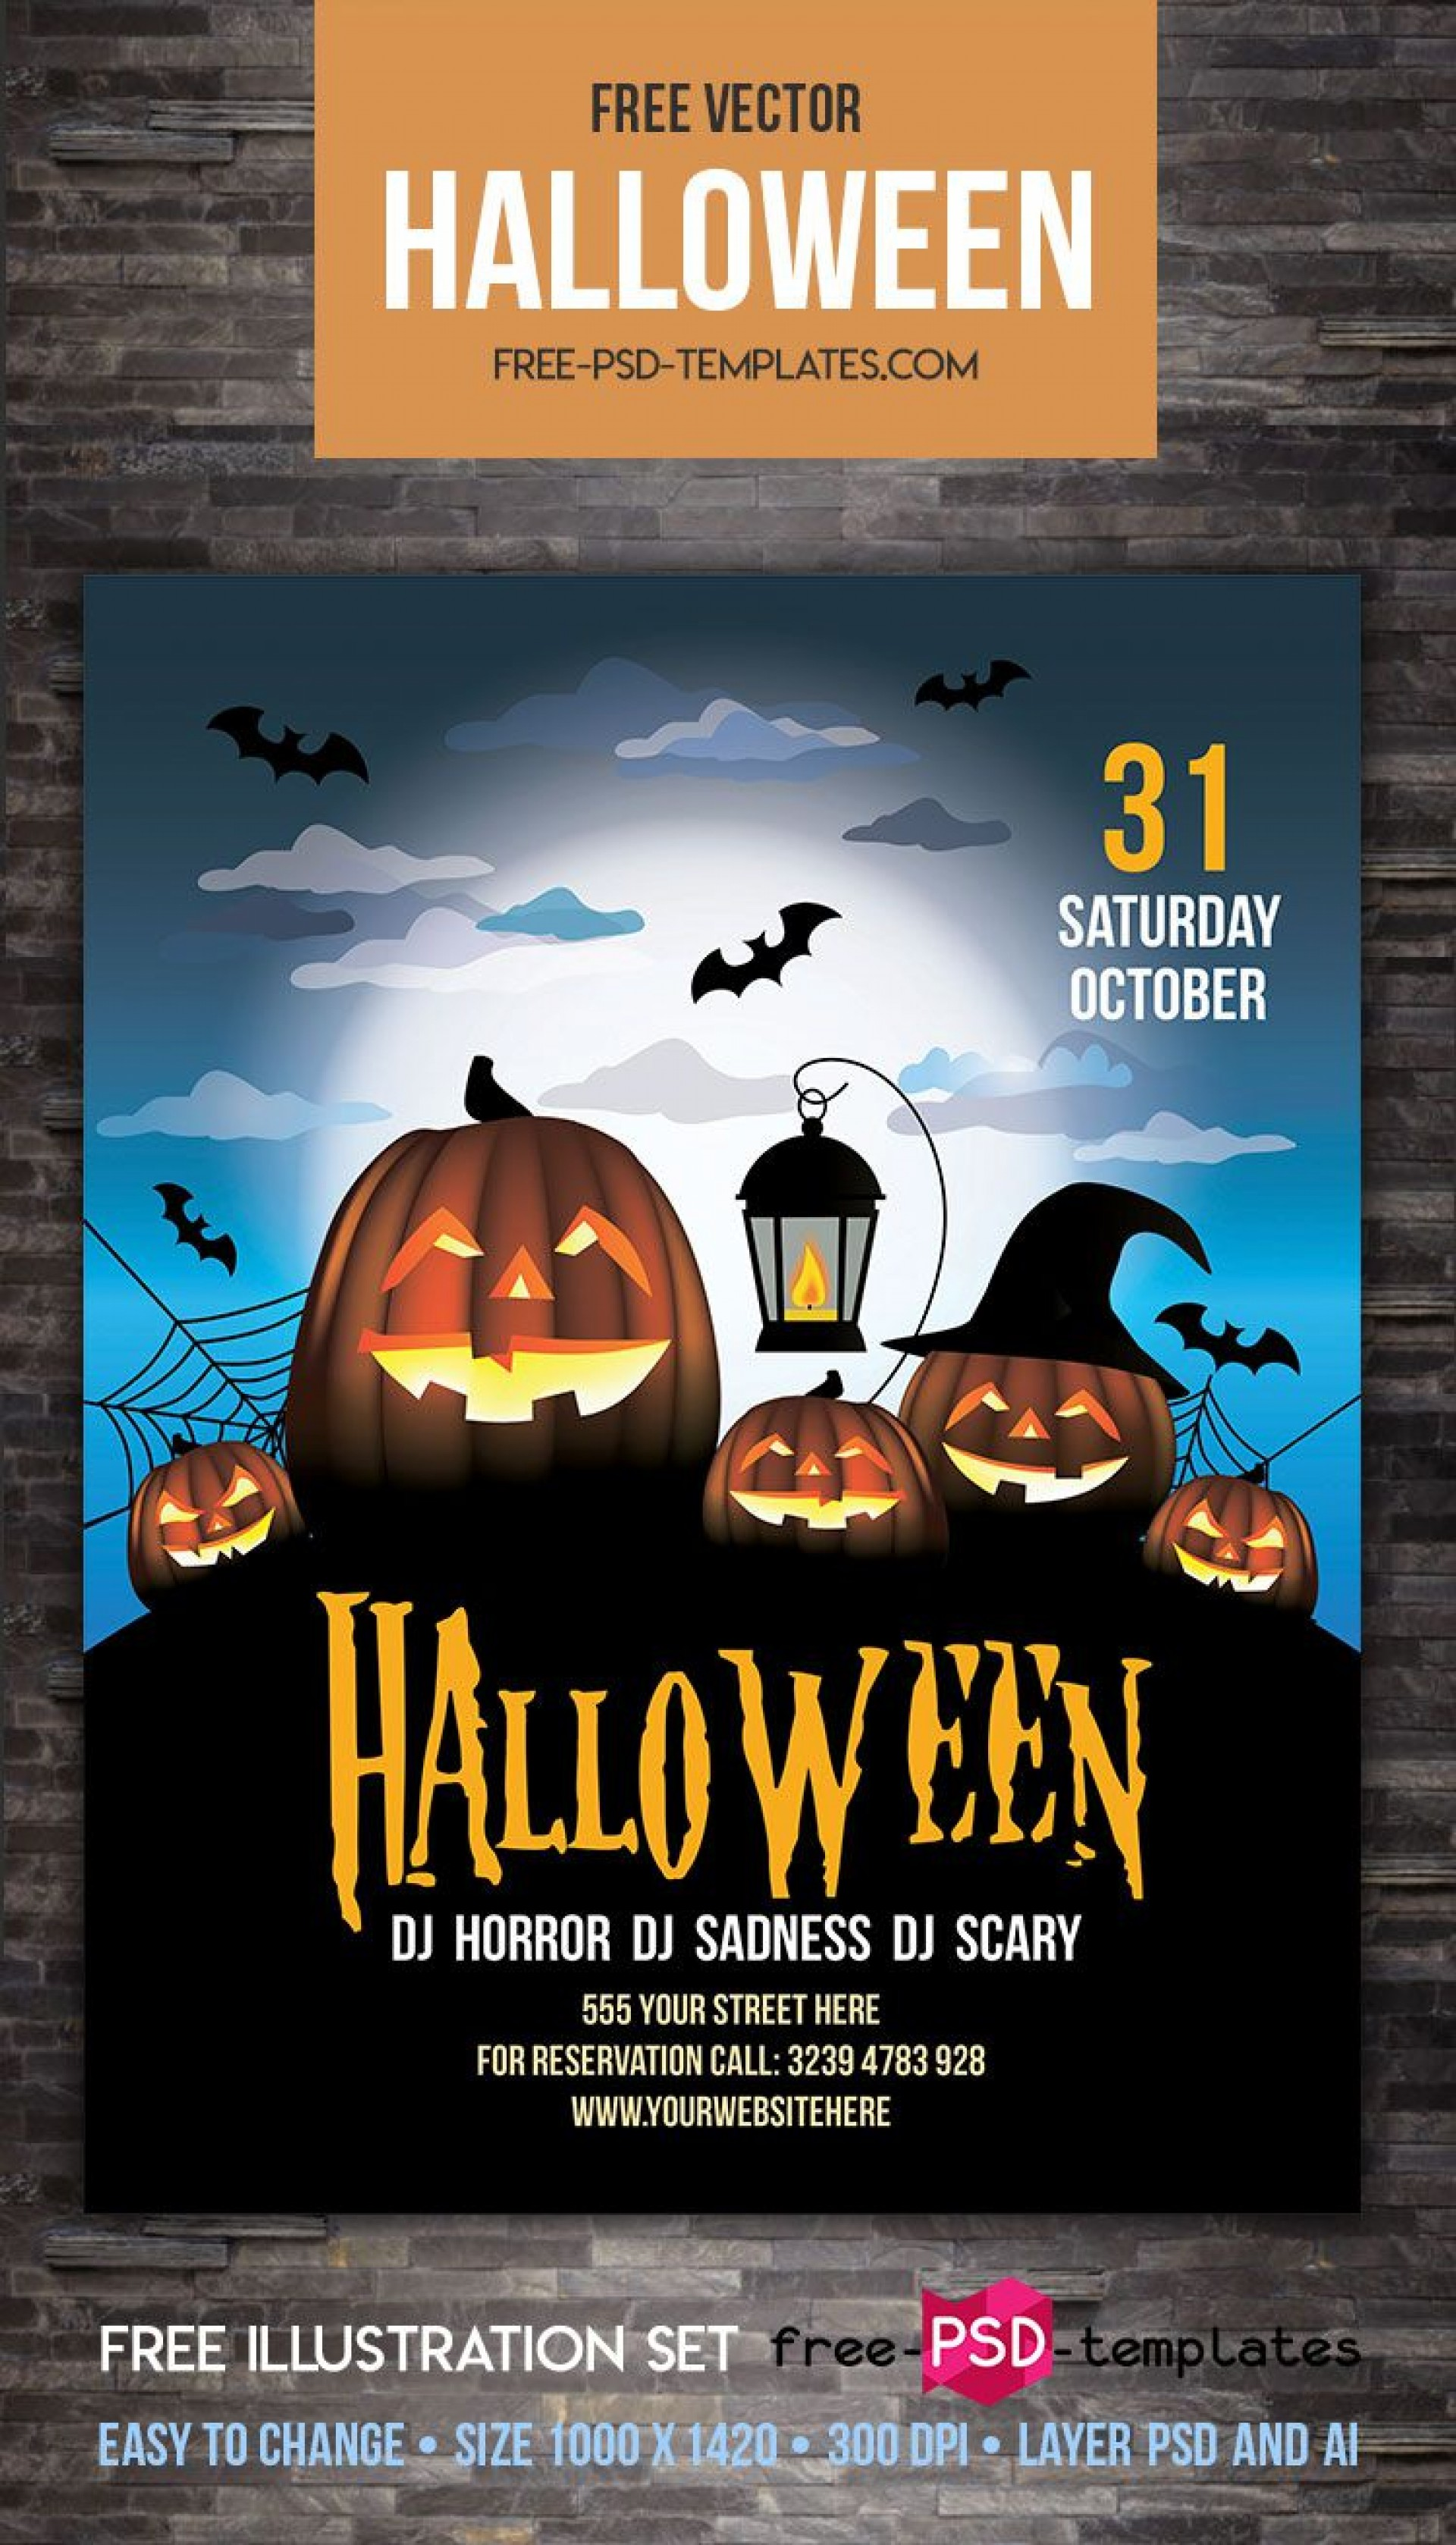 009 Surprising Free Halloween Party Flyer Template Example  Templates1920